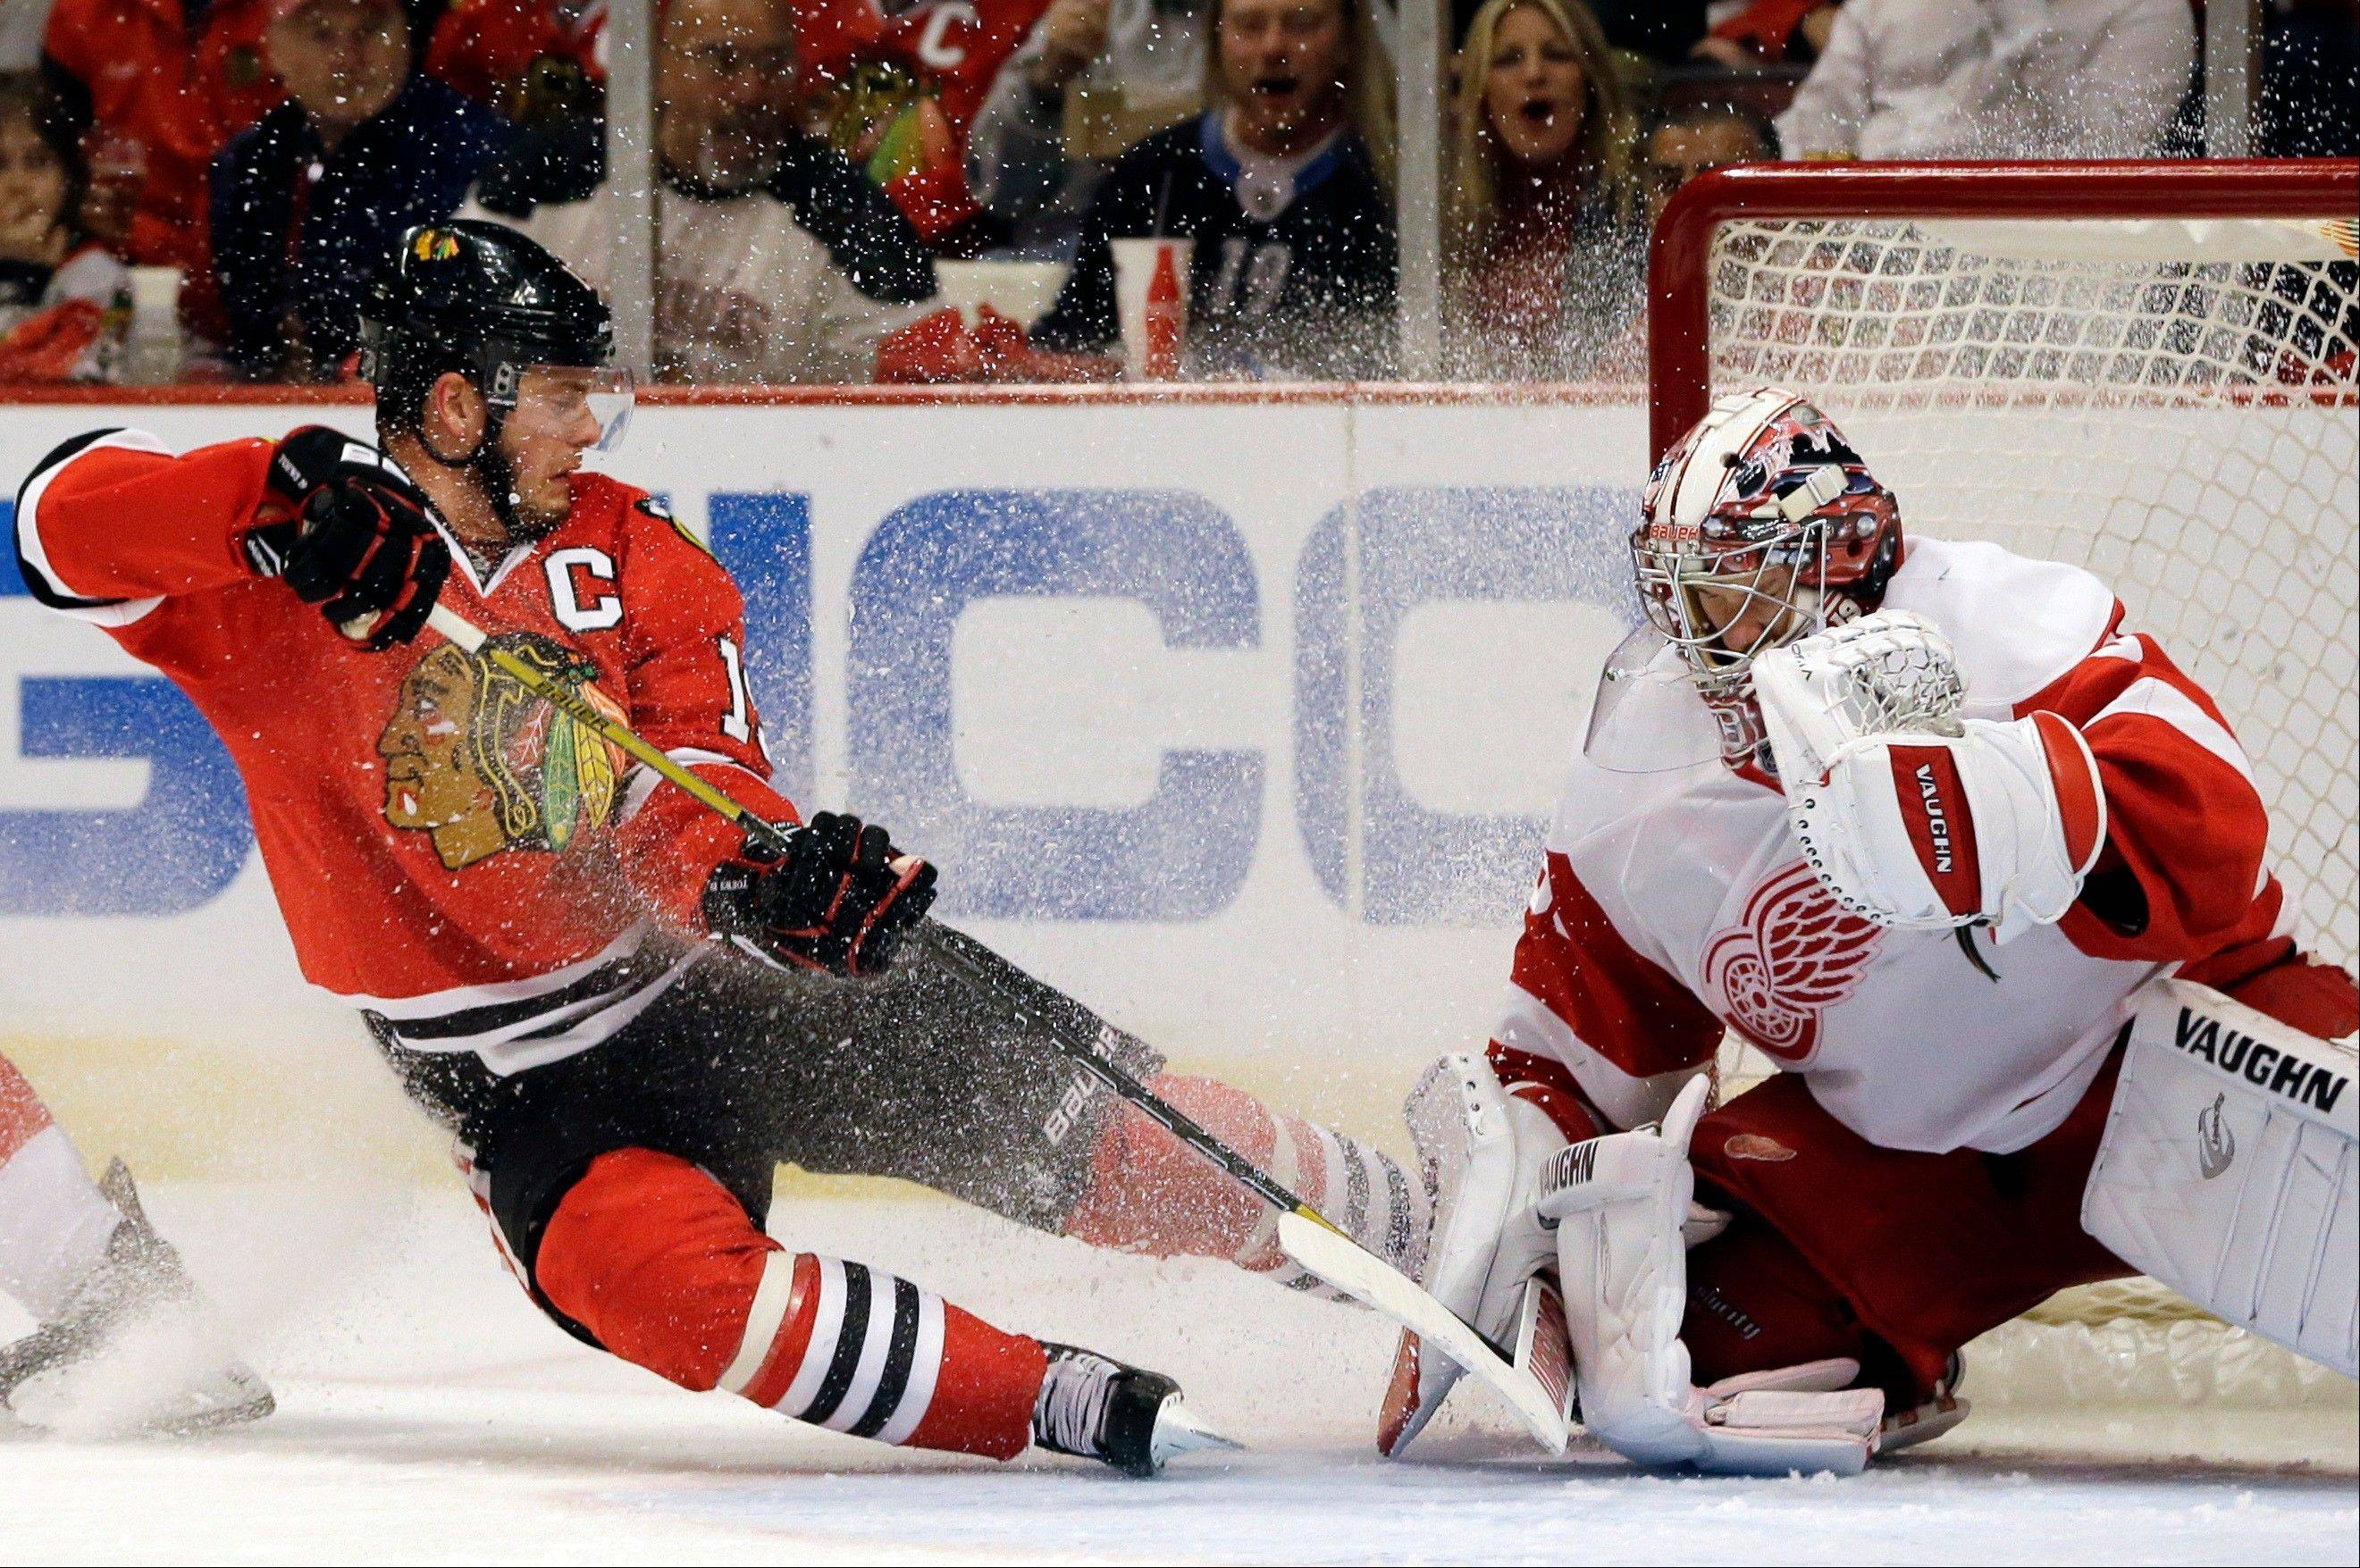 Detroit Red Wings goalie Jimmy Howard, right, saves a shot by Chicago Blackhawks� Jonathan Toews, left, during Game 5 of the NHL hockey Stanley Cup playoffs Western Conference semifinals Saturday at the United Center.